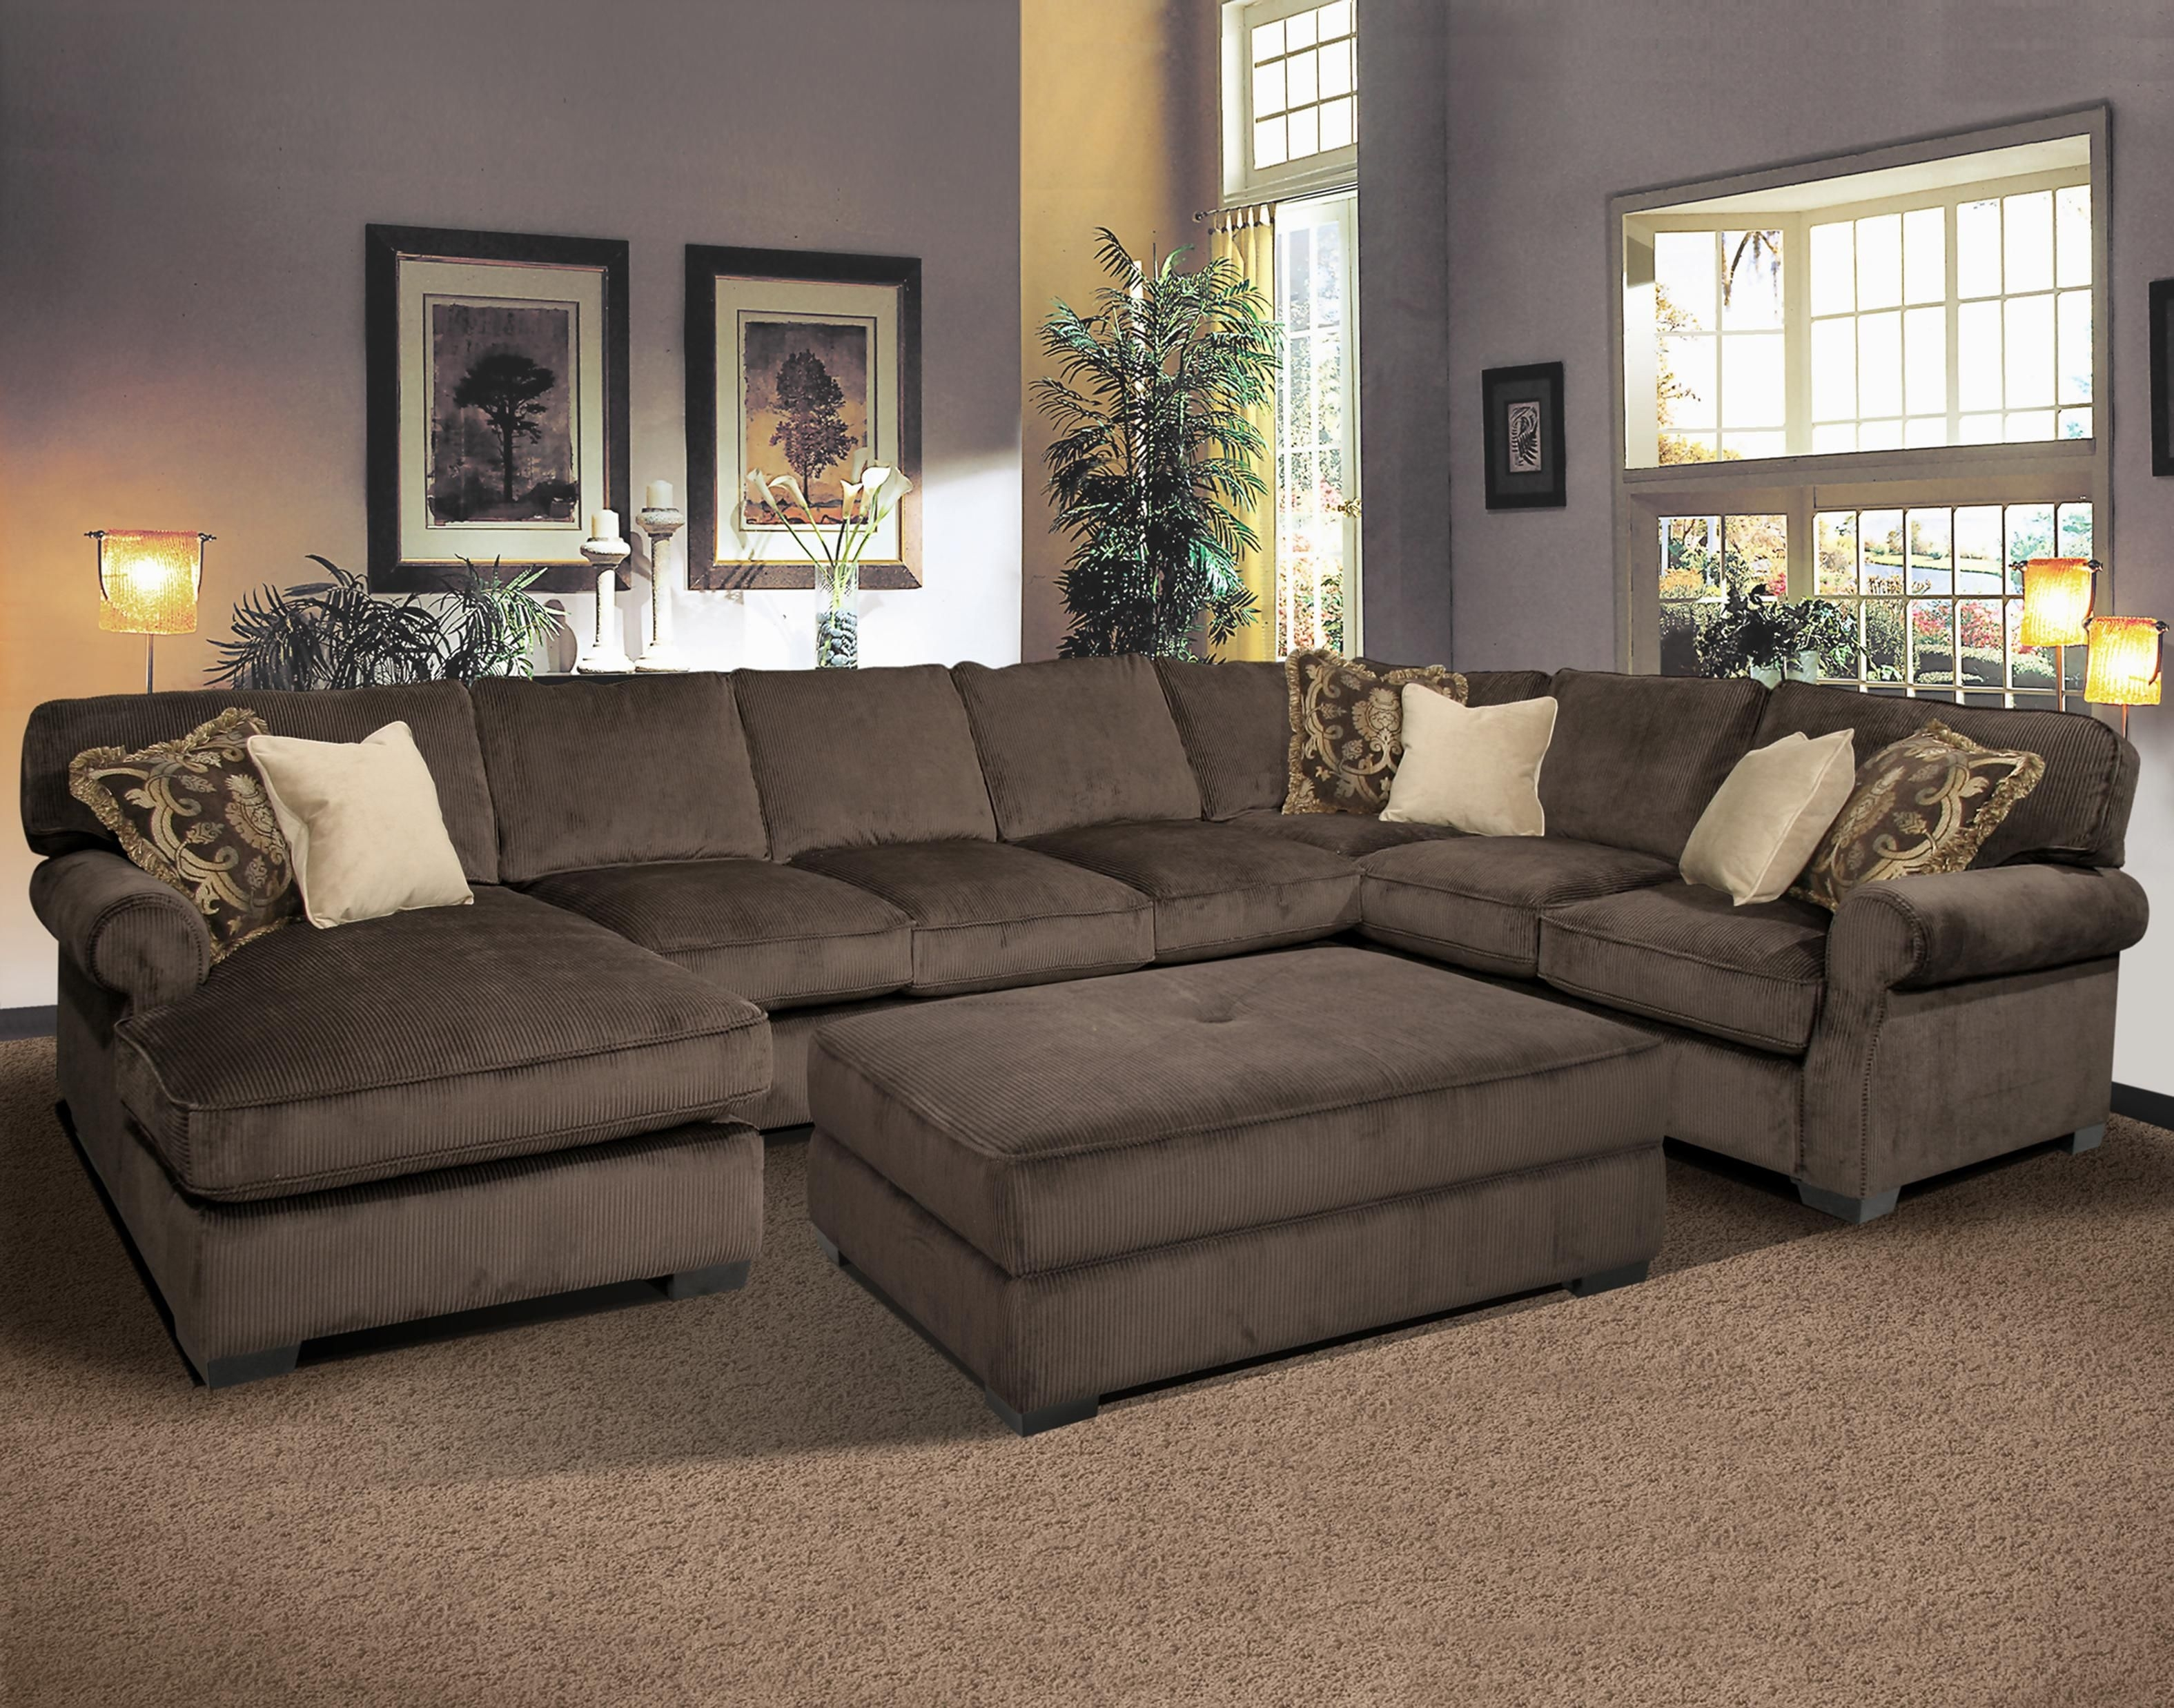 Grand Island Oversized Cocktail Ottoman For Sectional Sofa with Sectionals With Ottoman (Image 10 of 15)